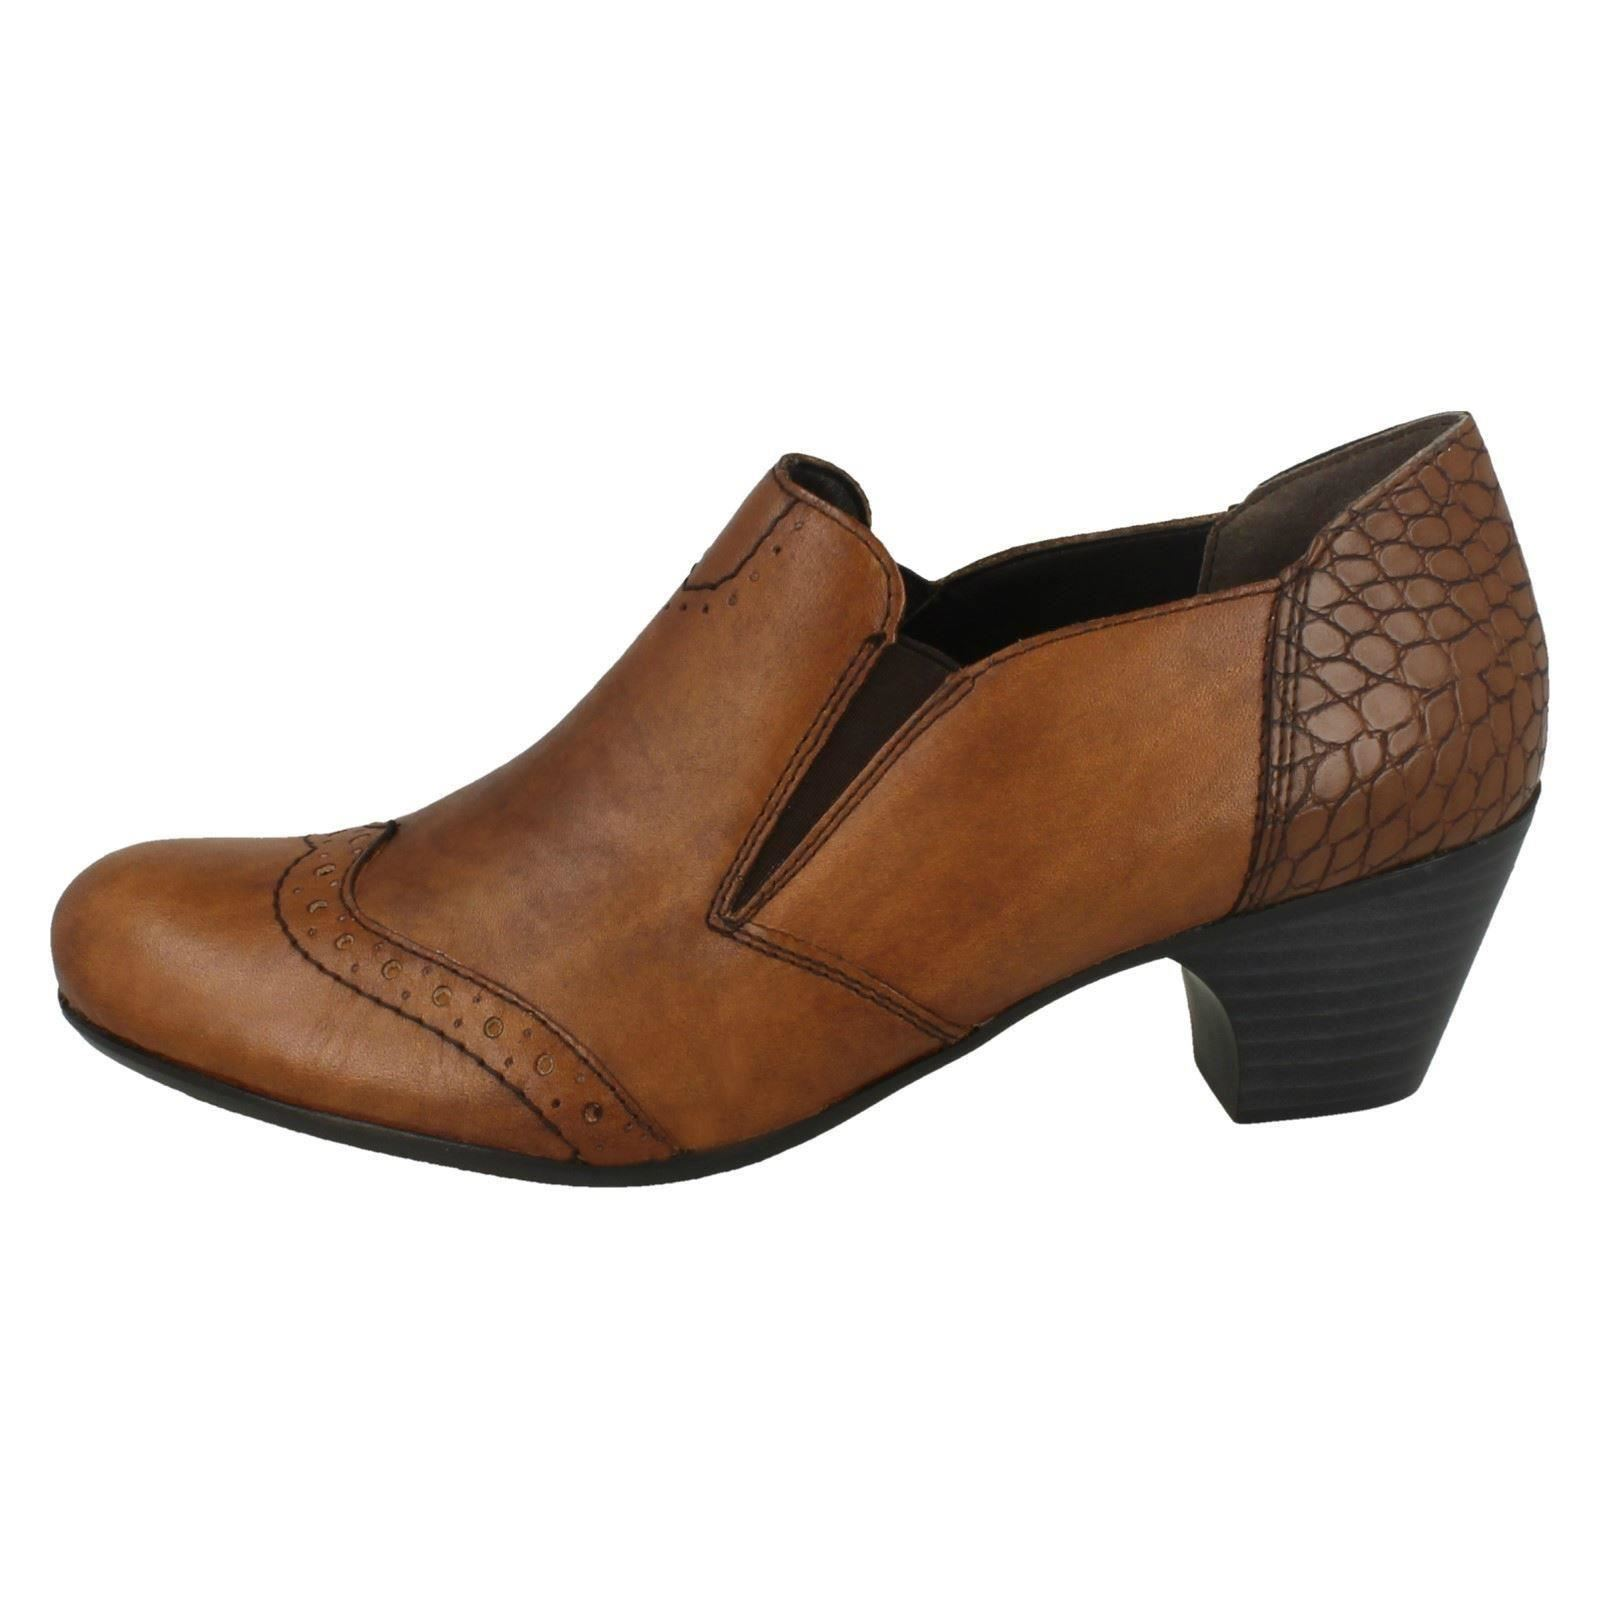 Ladies Shoes Rieker Brown '50563' With Heeled Detailing Brogue rSr6nxv